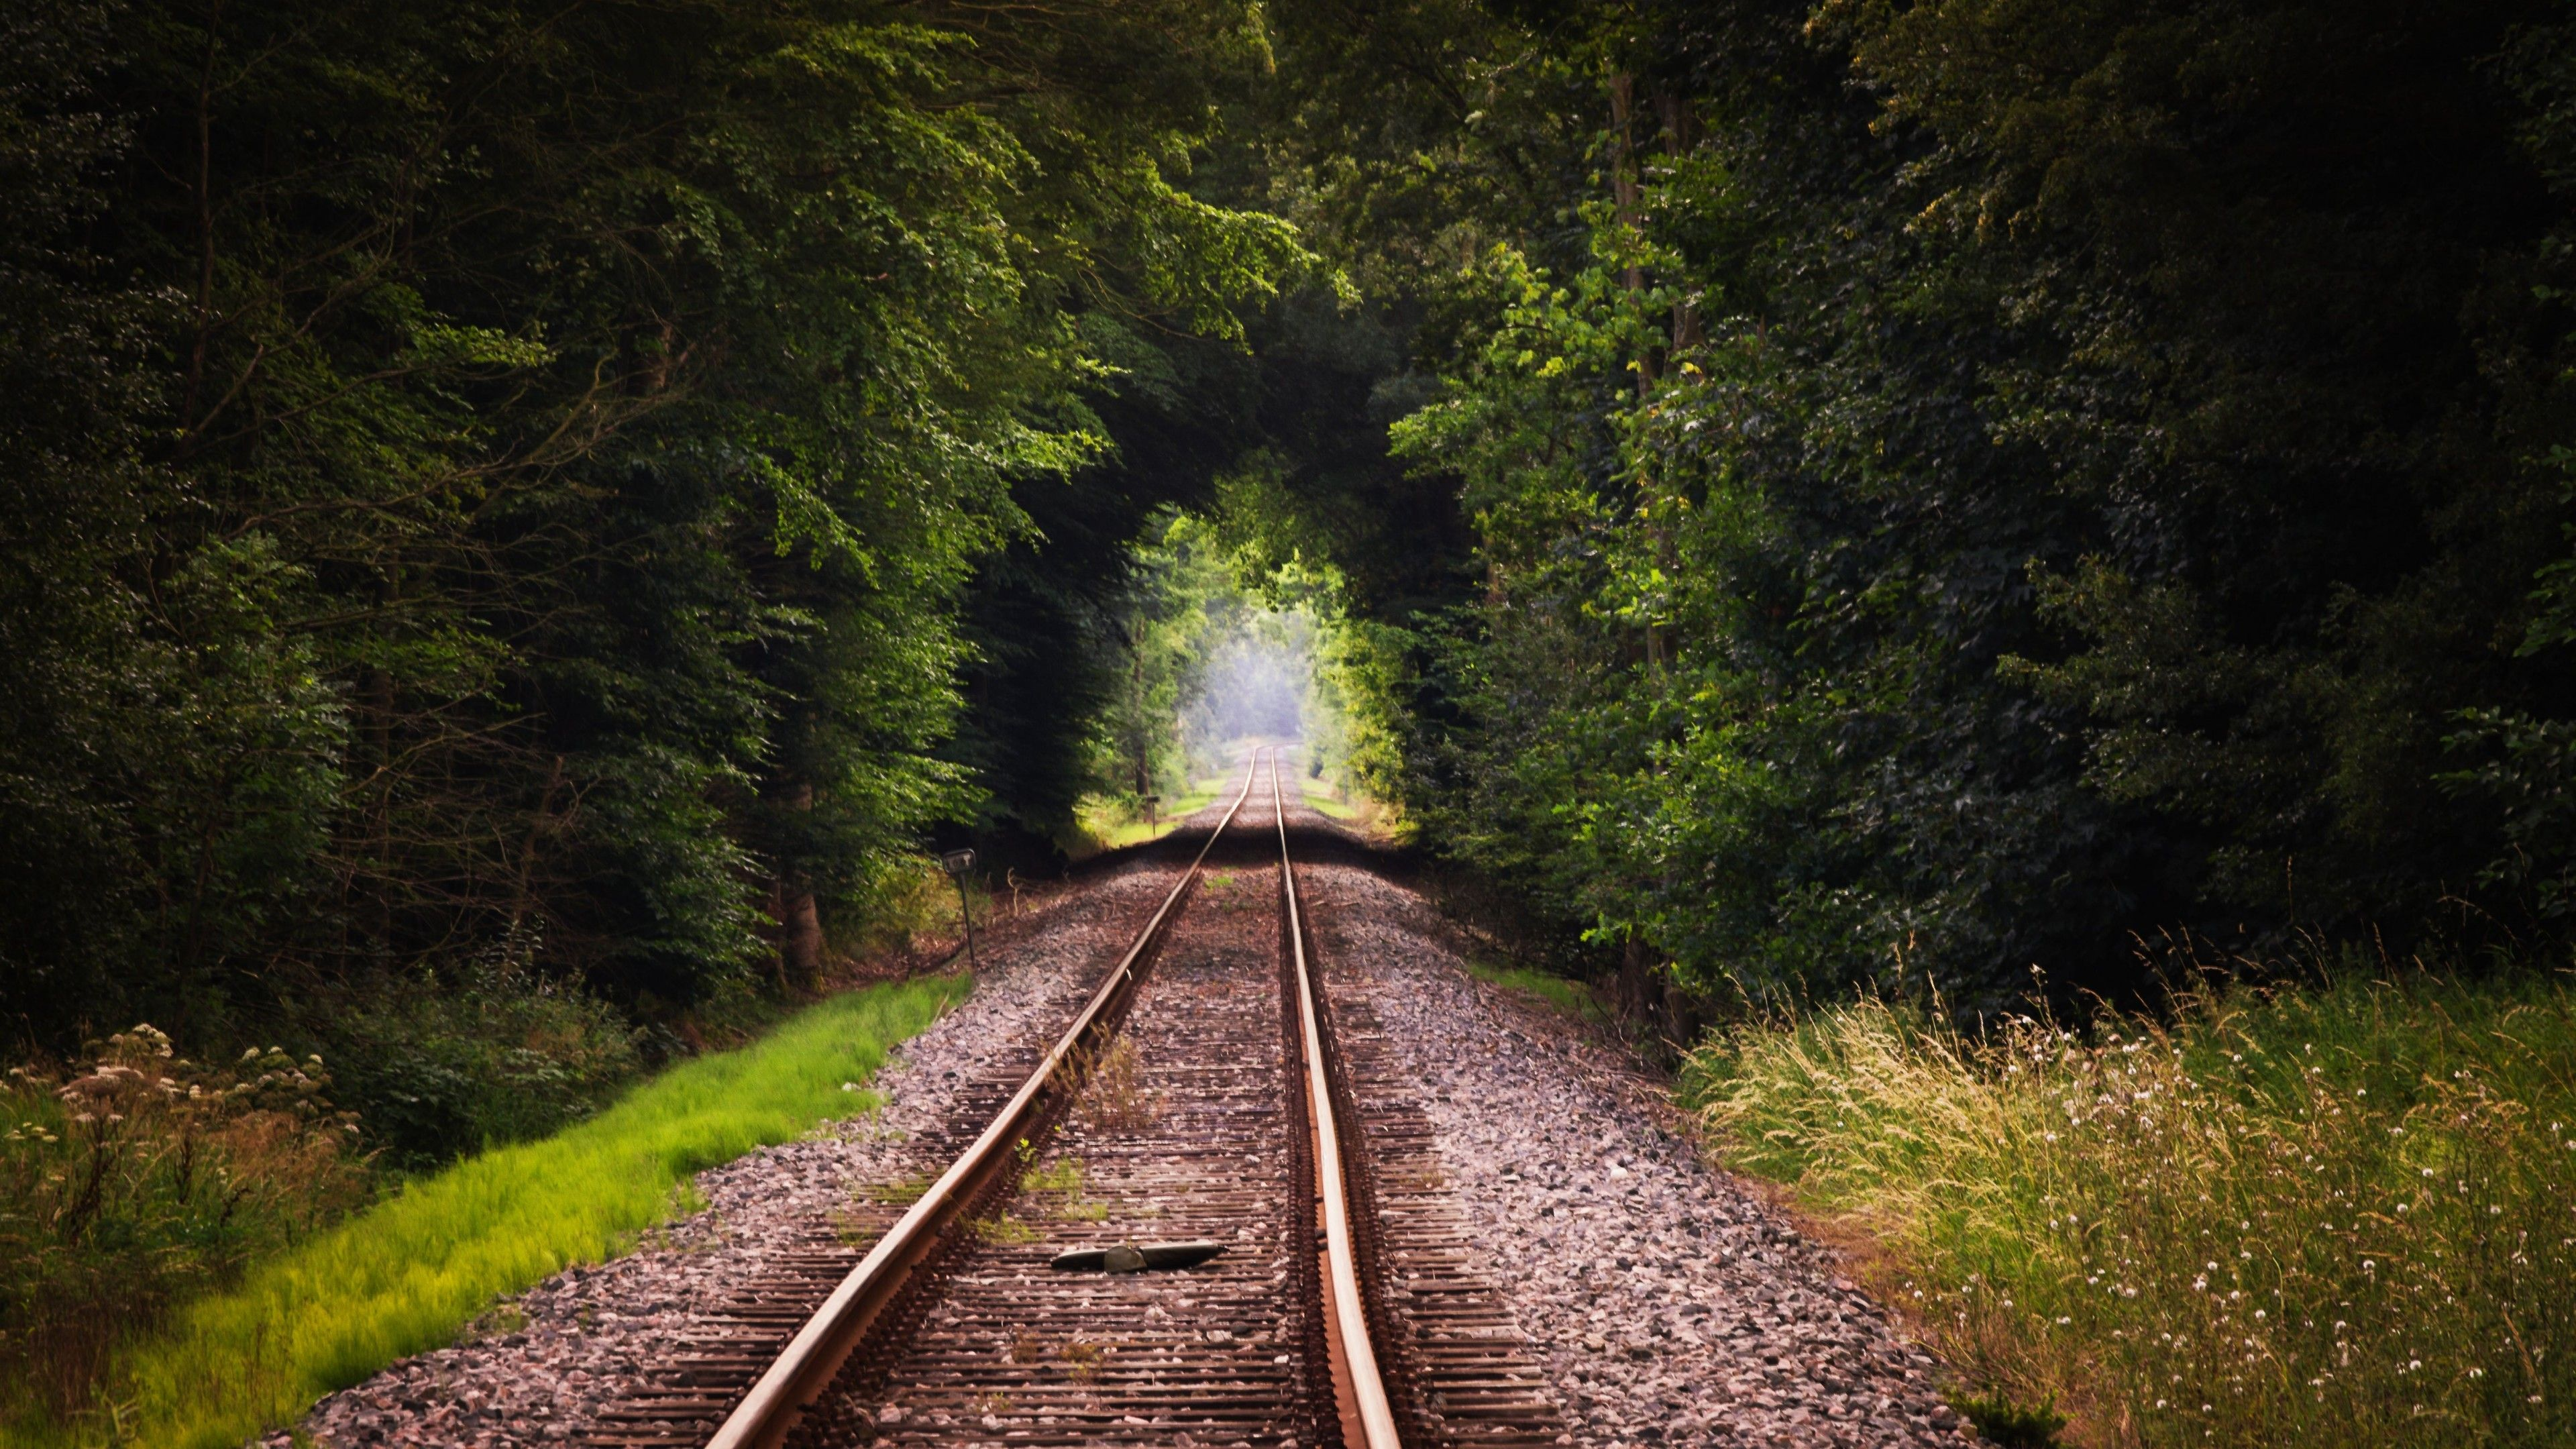 Train Tracks 4K Mobile Wallpapers   Top Train Tracks 4K 3840x2160